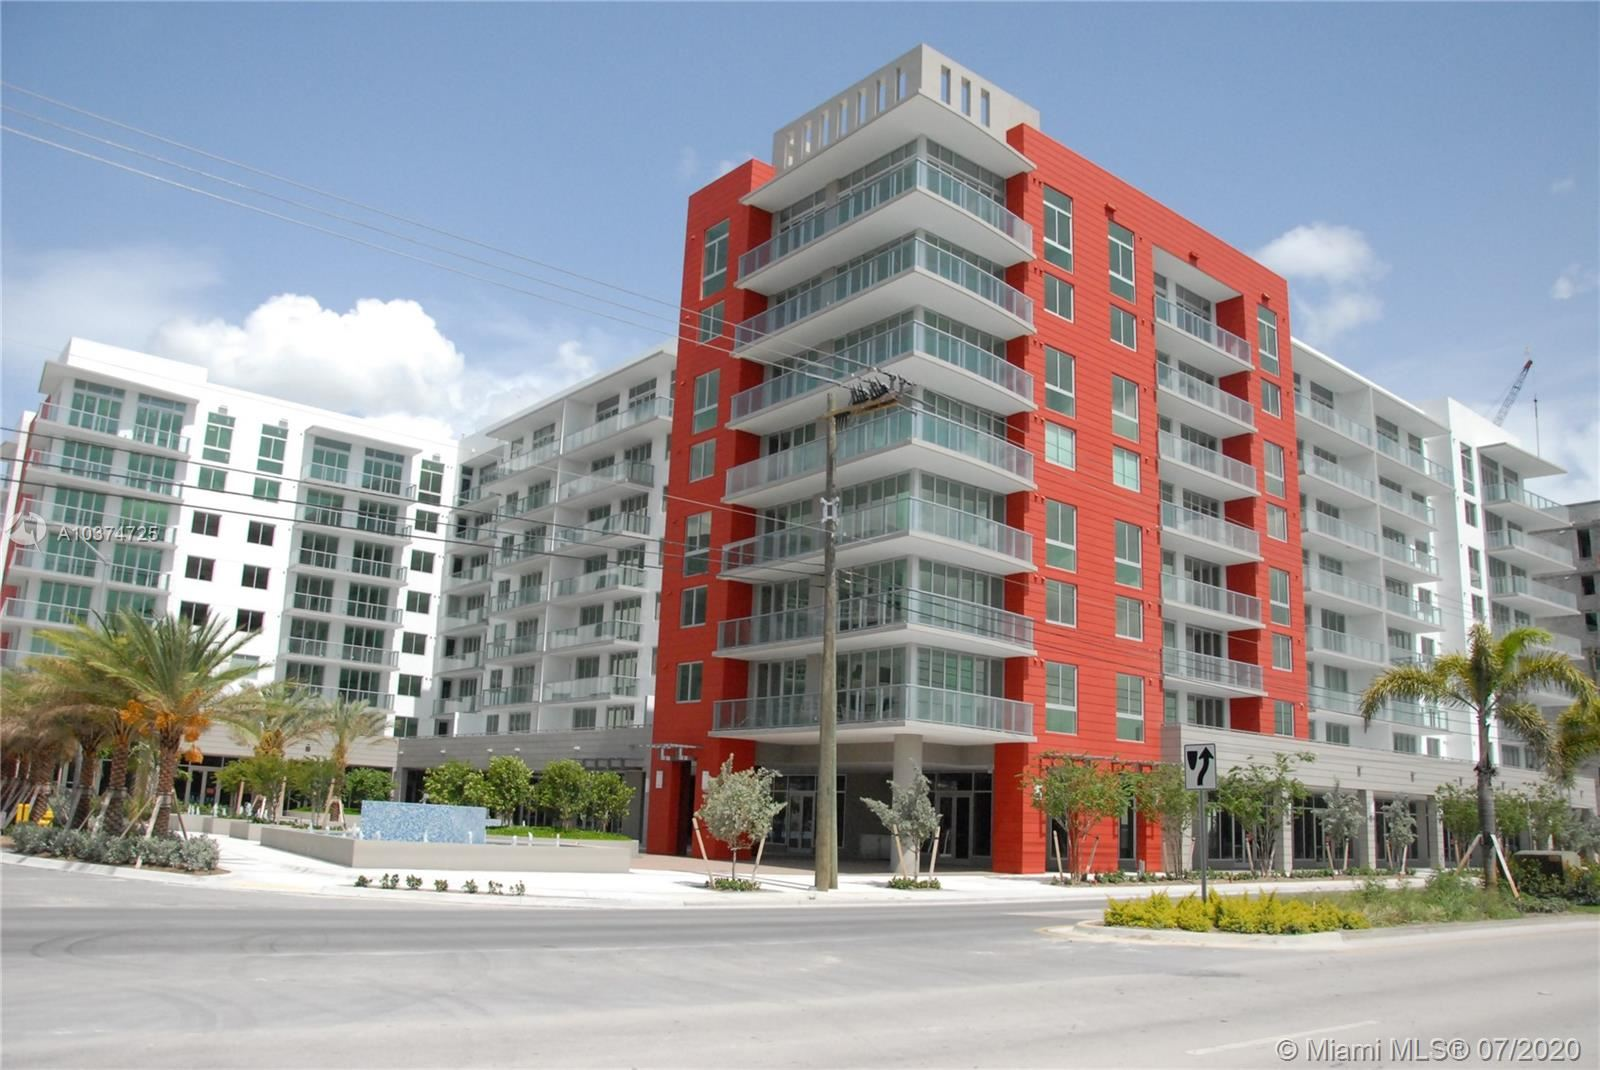 7751 NW 107th AVE #217, Doral, FL 33178 - #: A10374725